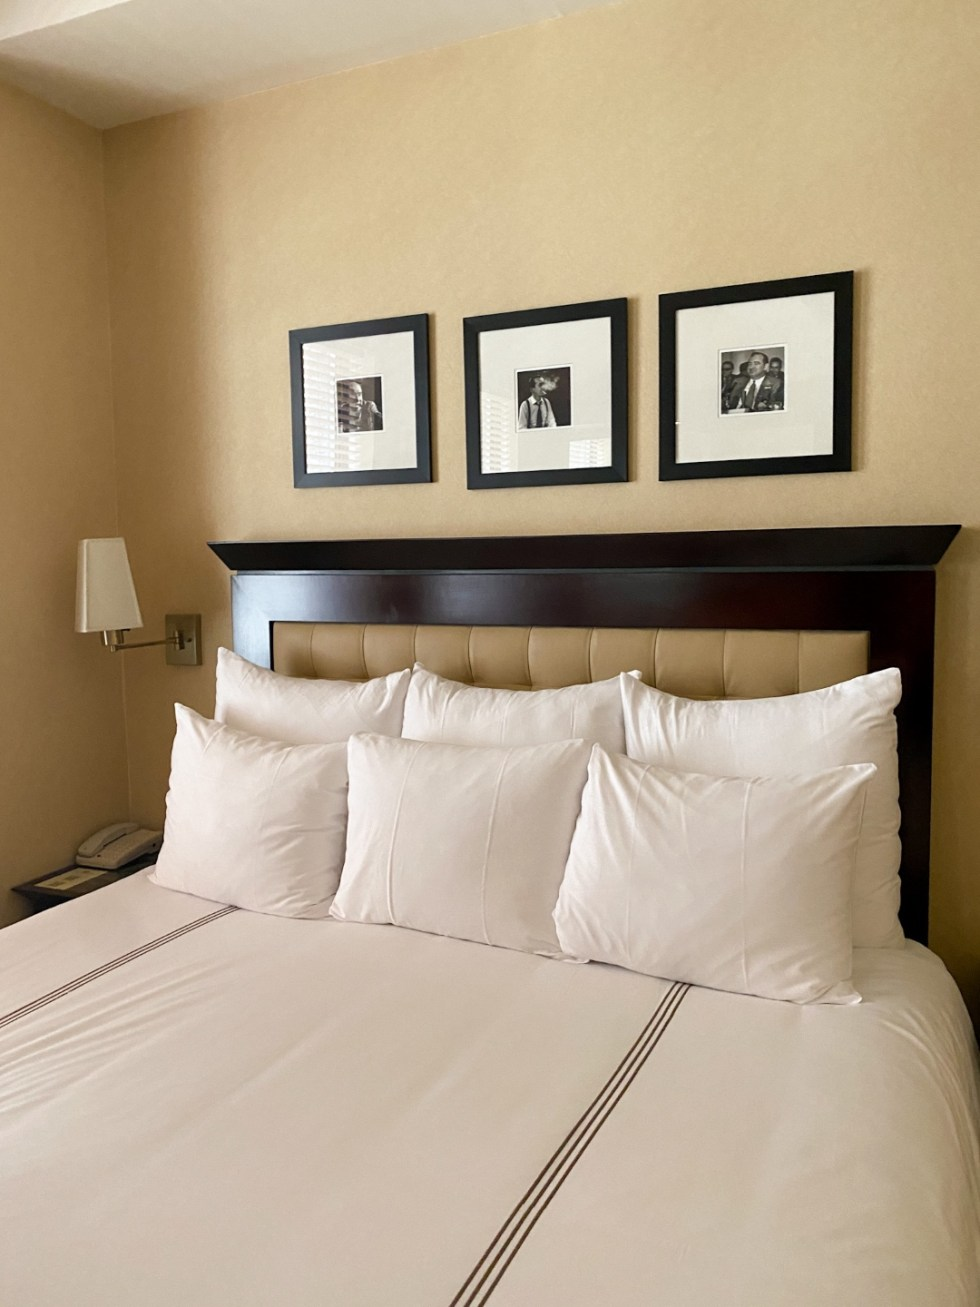 NYC Summer Weekend: Things to Do in NYC in the Summer - I'm Fixin' To - @imfixintoblog   NYC Summer Weekend by popular NC travel blog, I'm Fixin' To: image of a bed with black and white bedding.